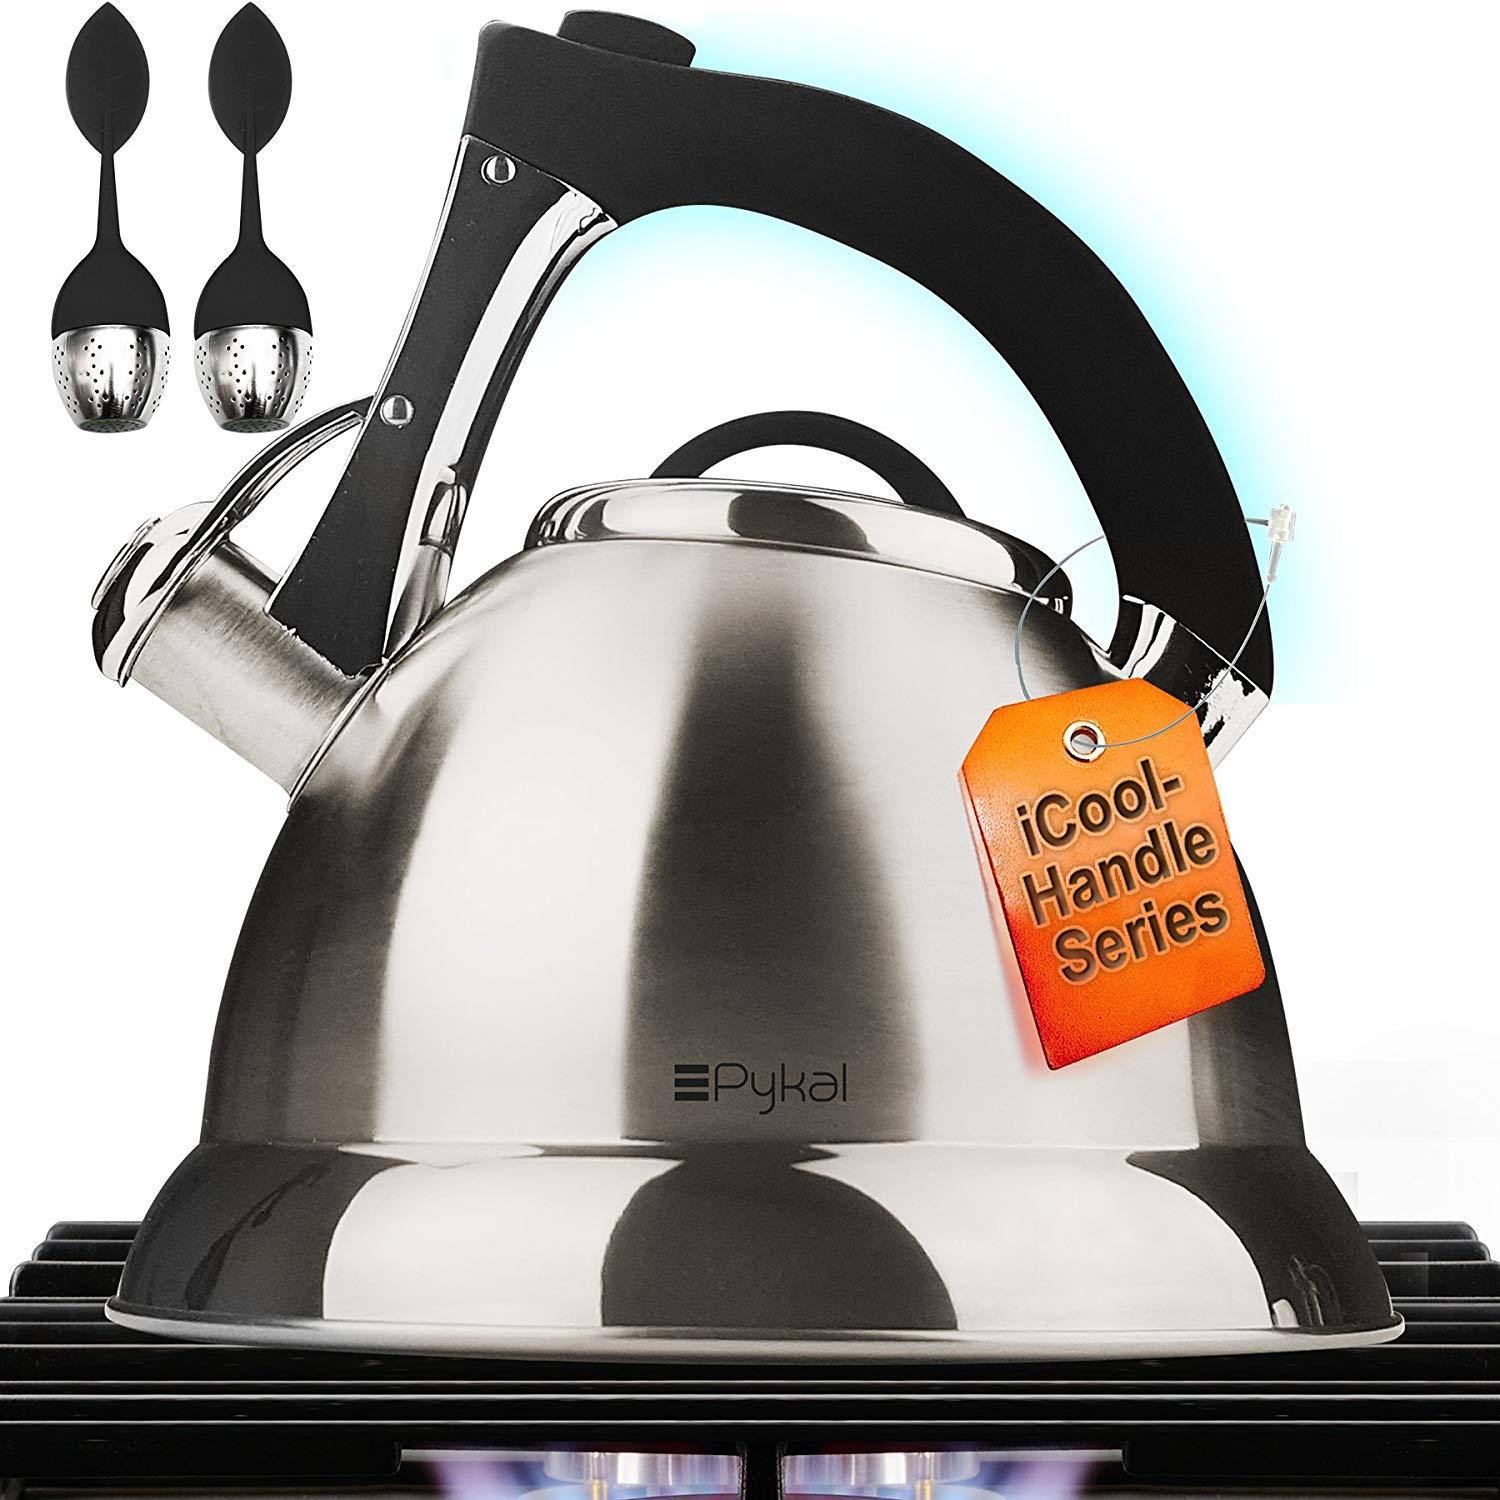 Pykal Whistling Tea Kettle with iCool